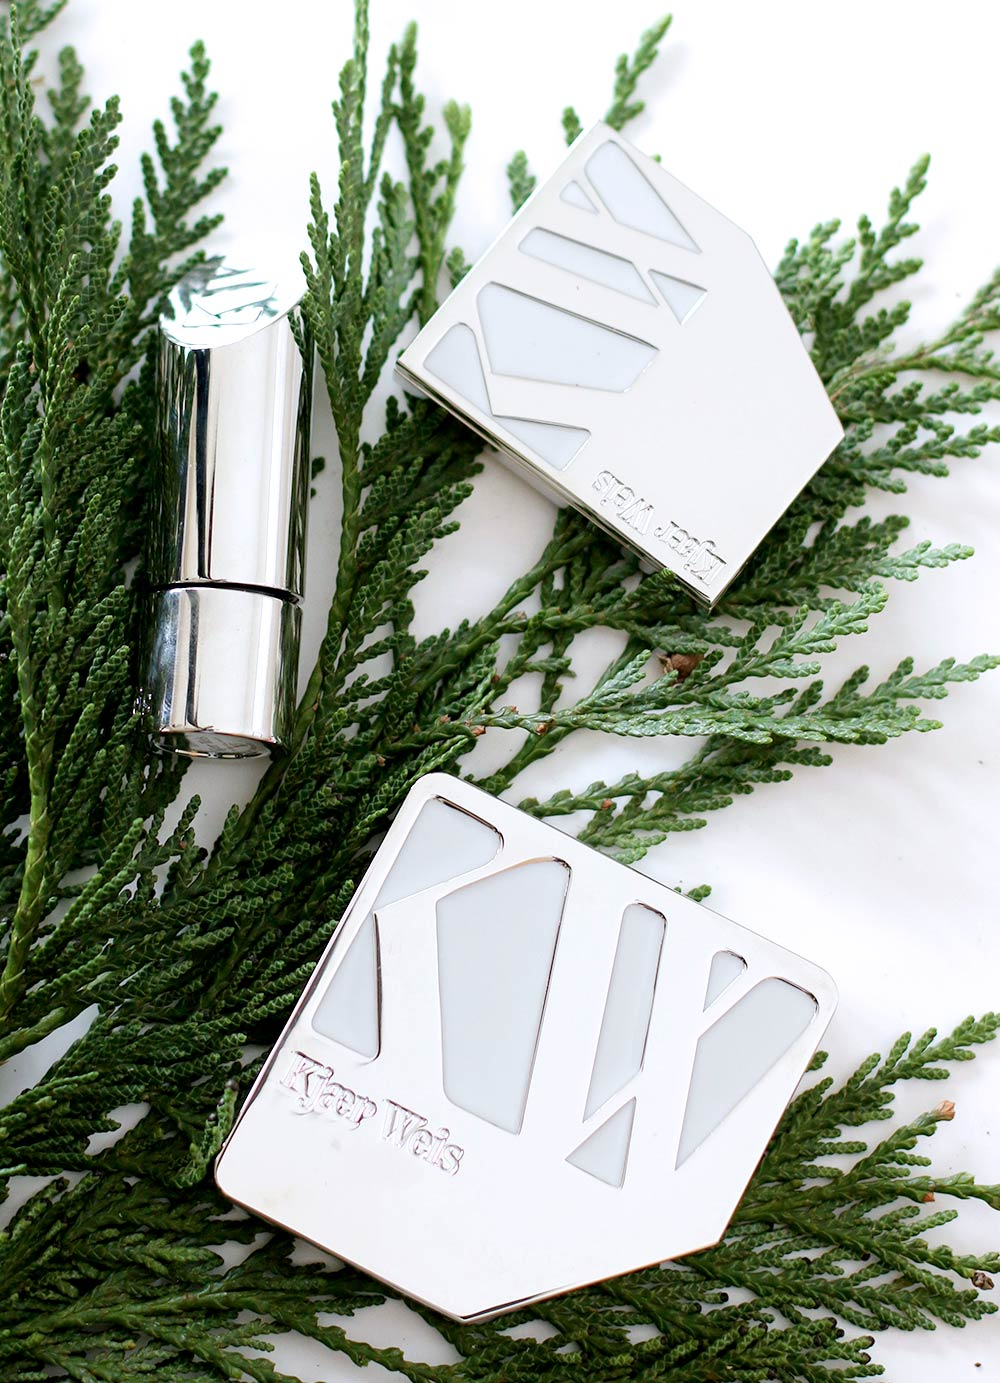 kjaer weis packaging